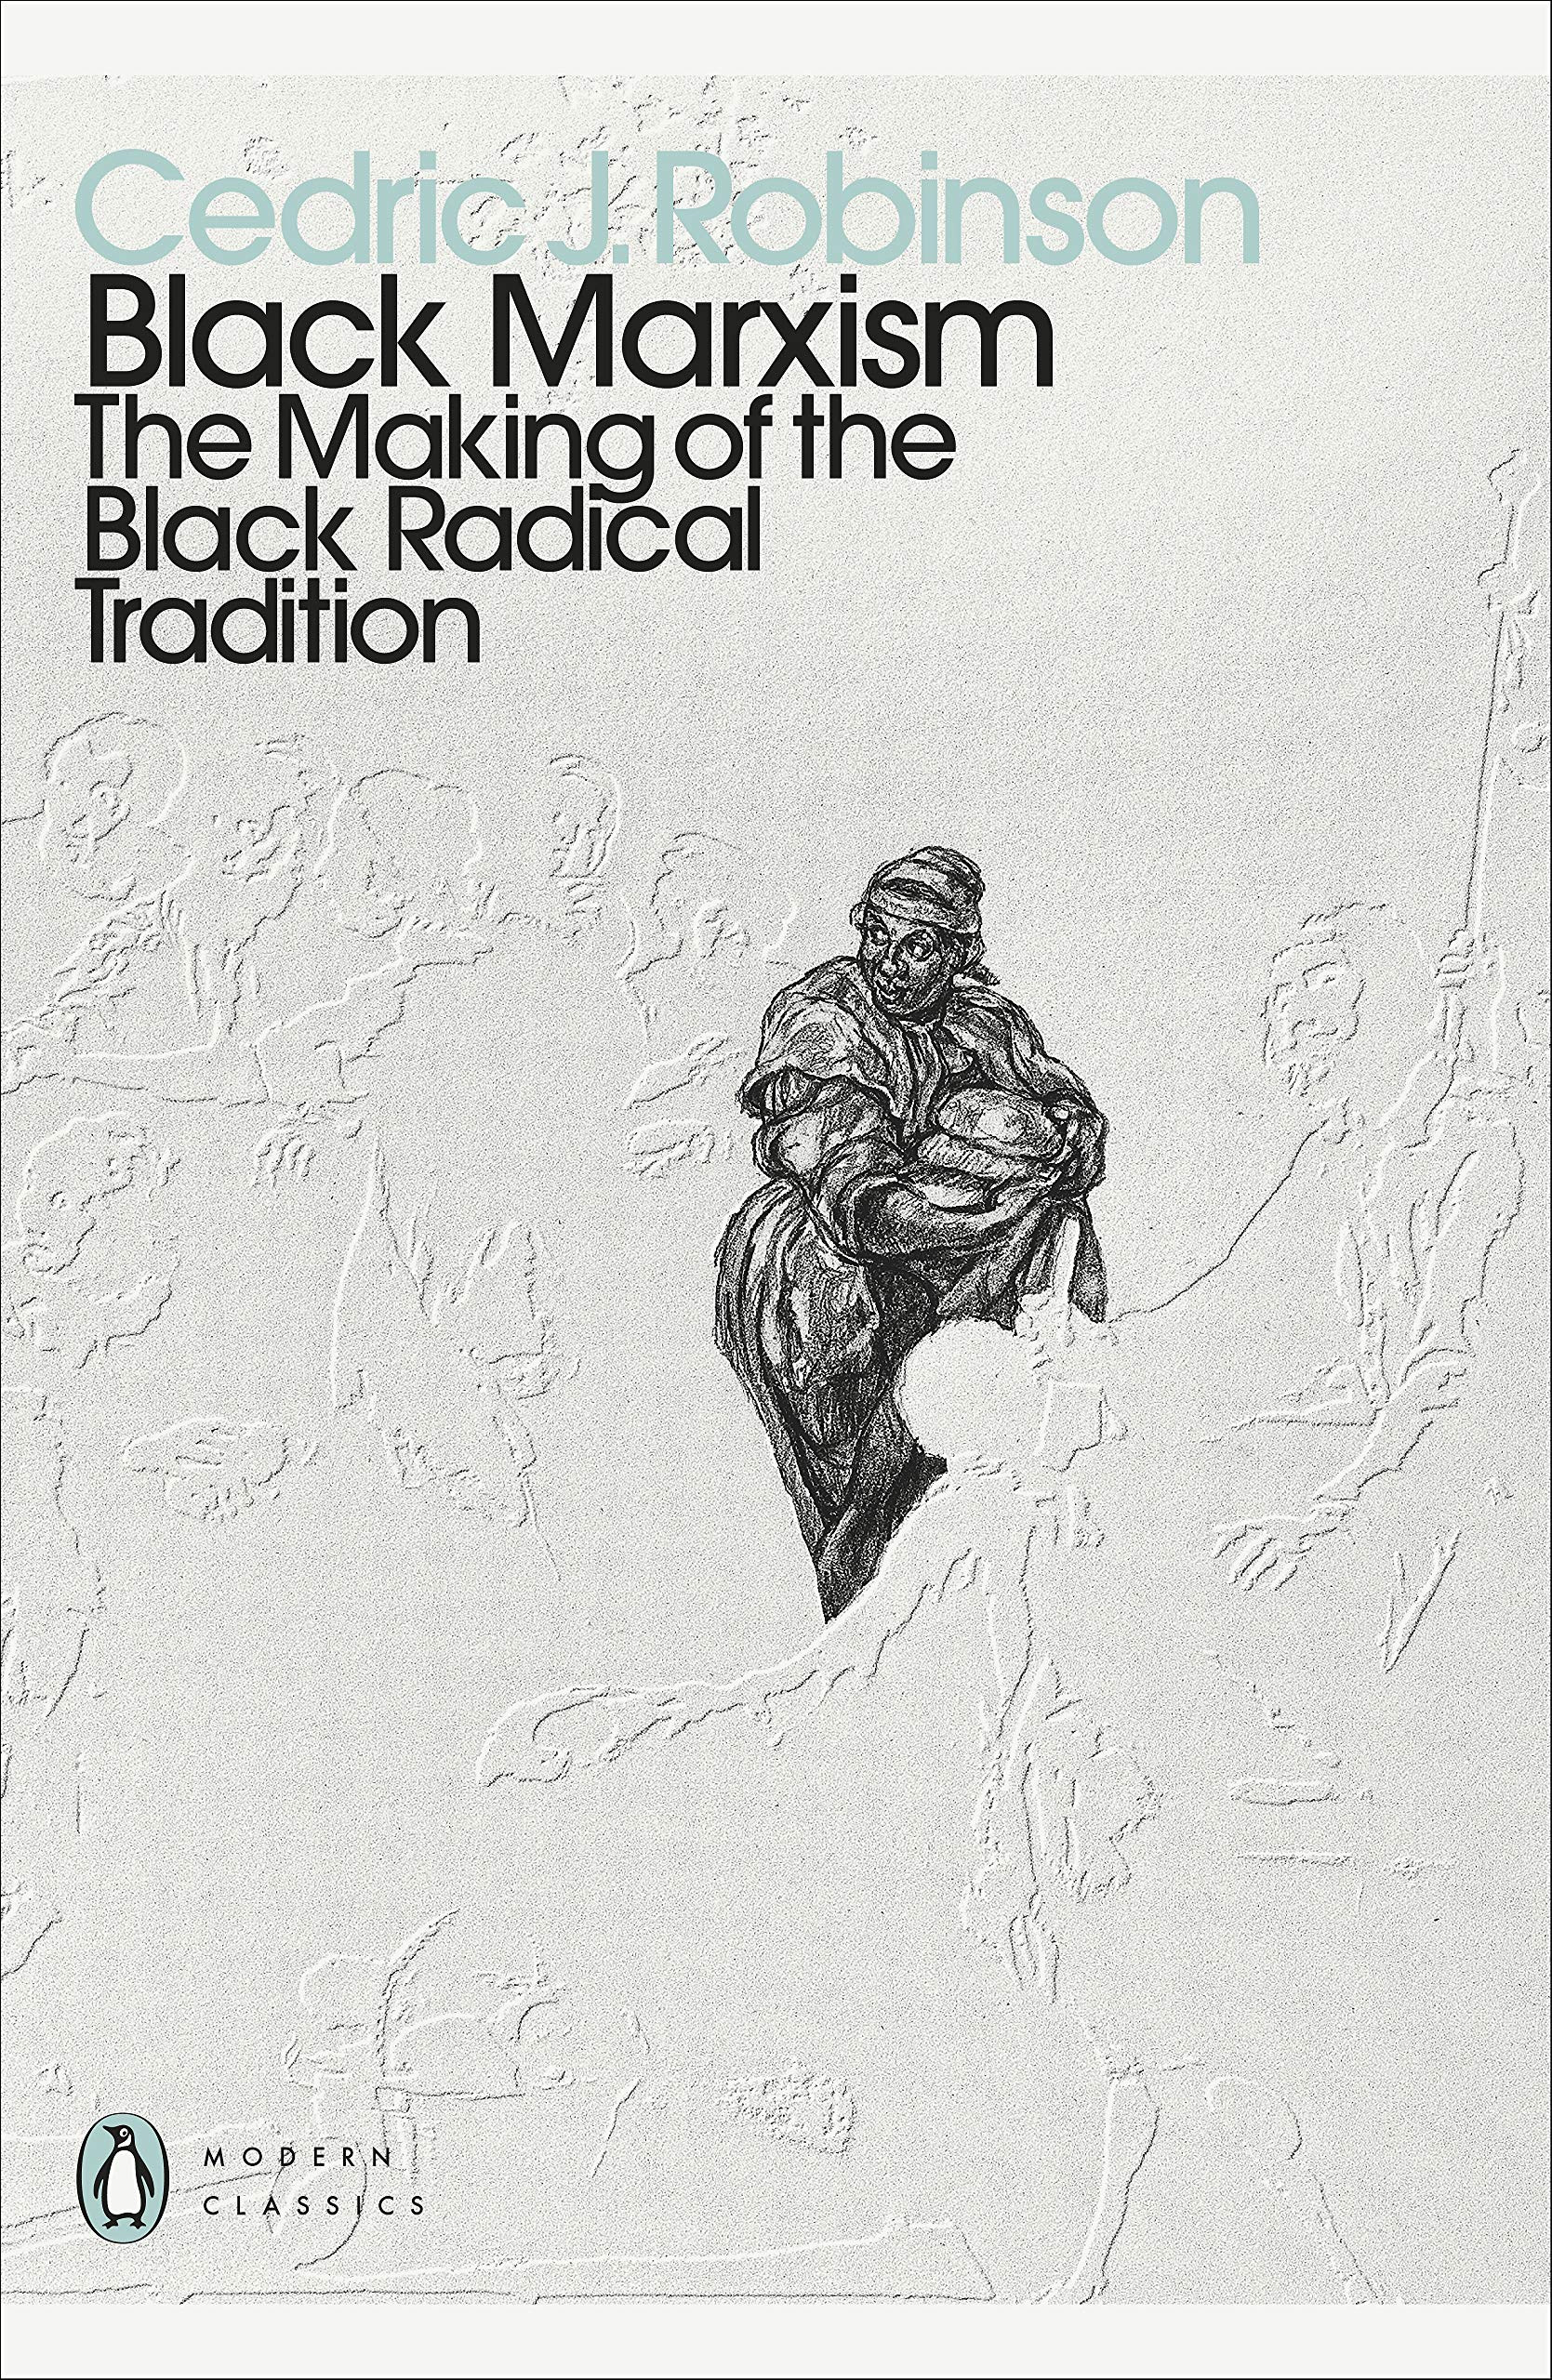 Cedric J. Robinson: Black Marxism - The Making of the Black Radical Tradition